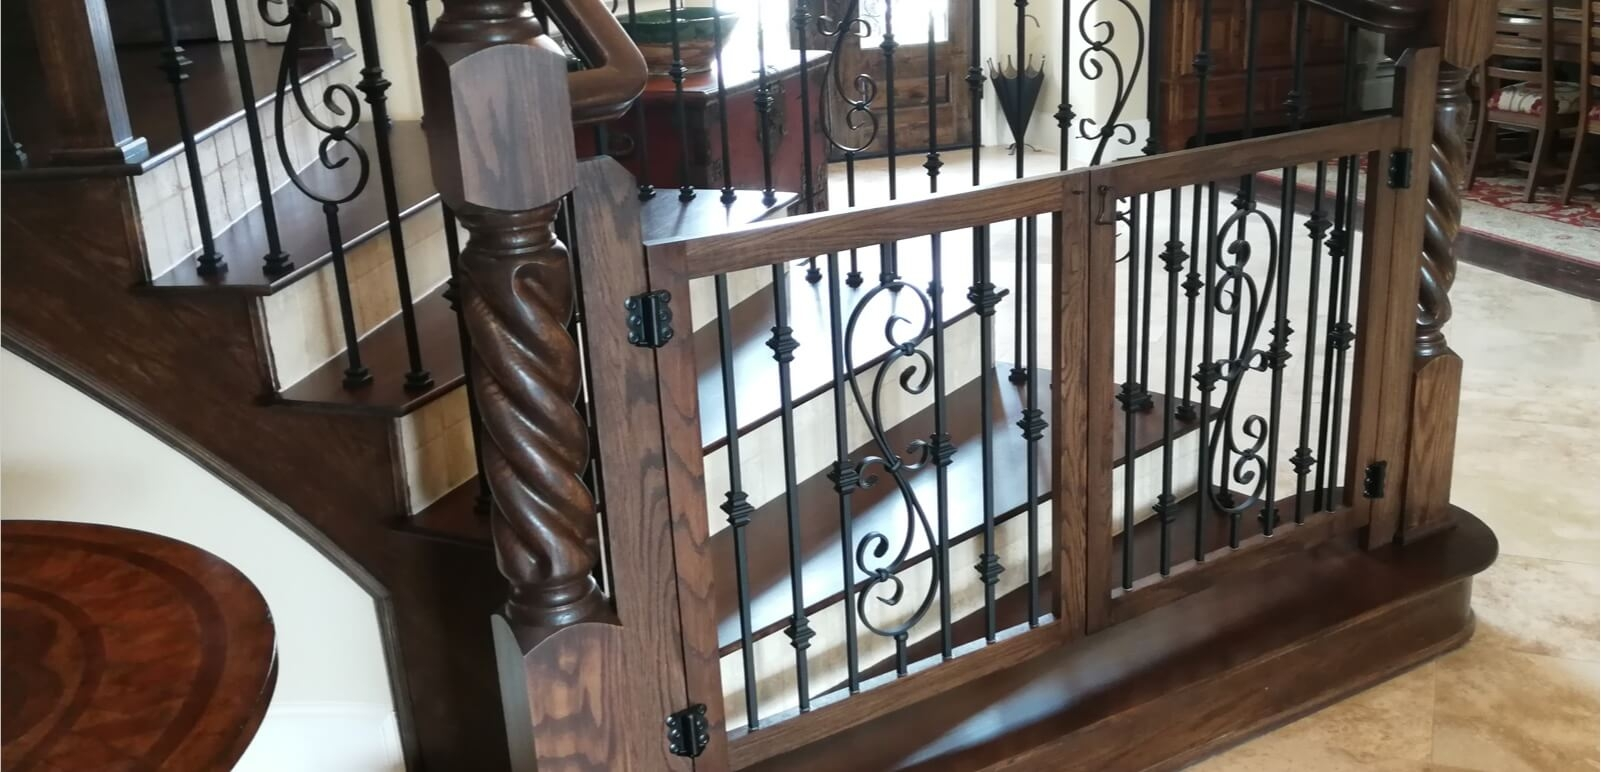 Houston Stair Parts Stair Remodel Iron Balusters Railing   Replacing Wood Balusters With Iron   Staircase   Stair Spindles   Stair Parts   Handrail   Stair Railing